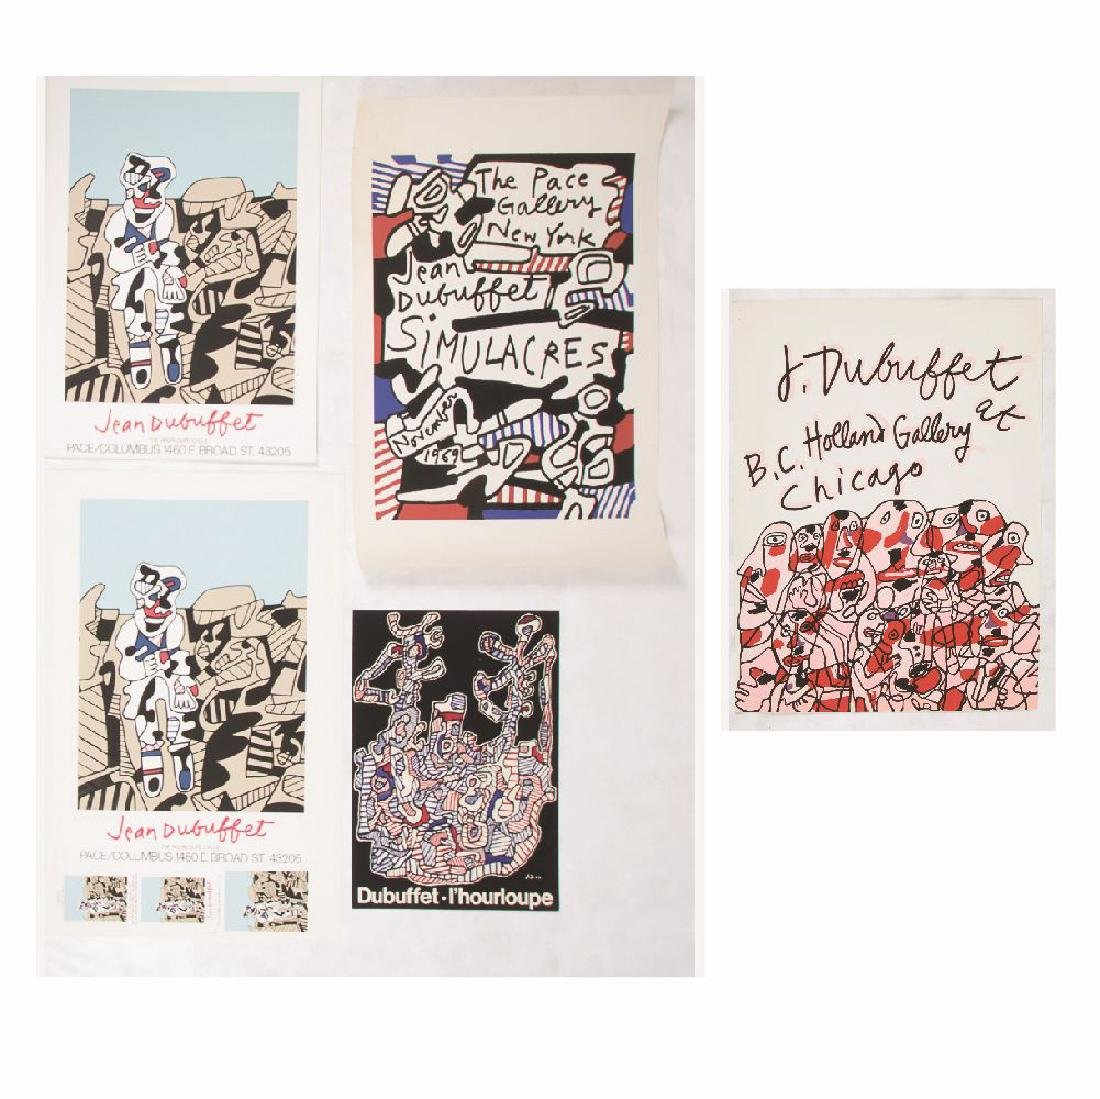 A Group of Five Jean Dubuffet (1901-1985) Lithographic